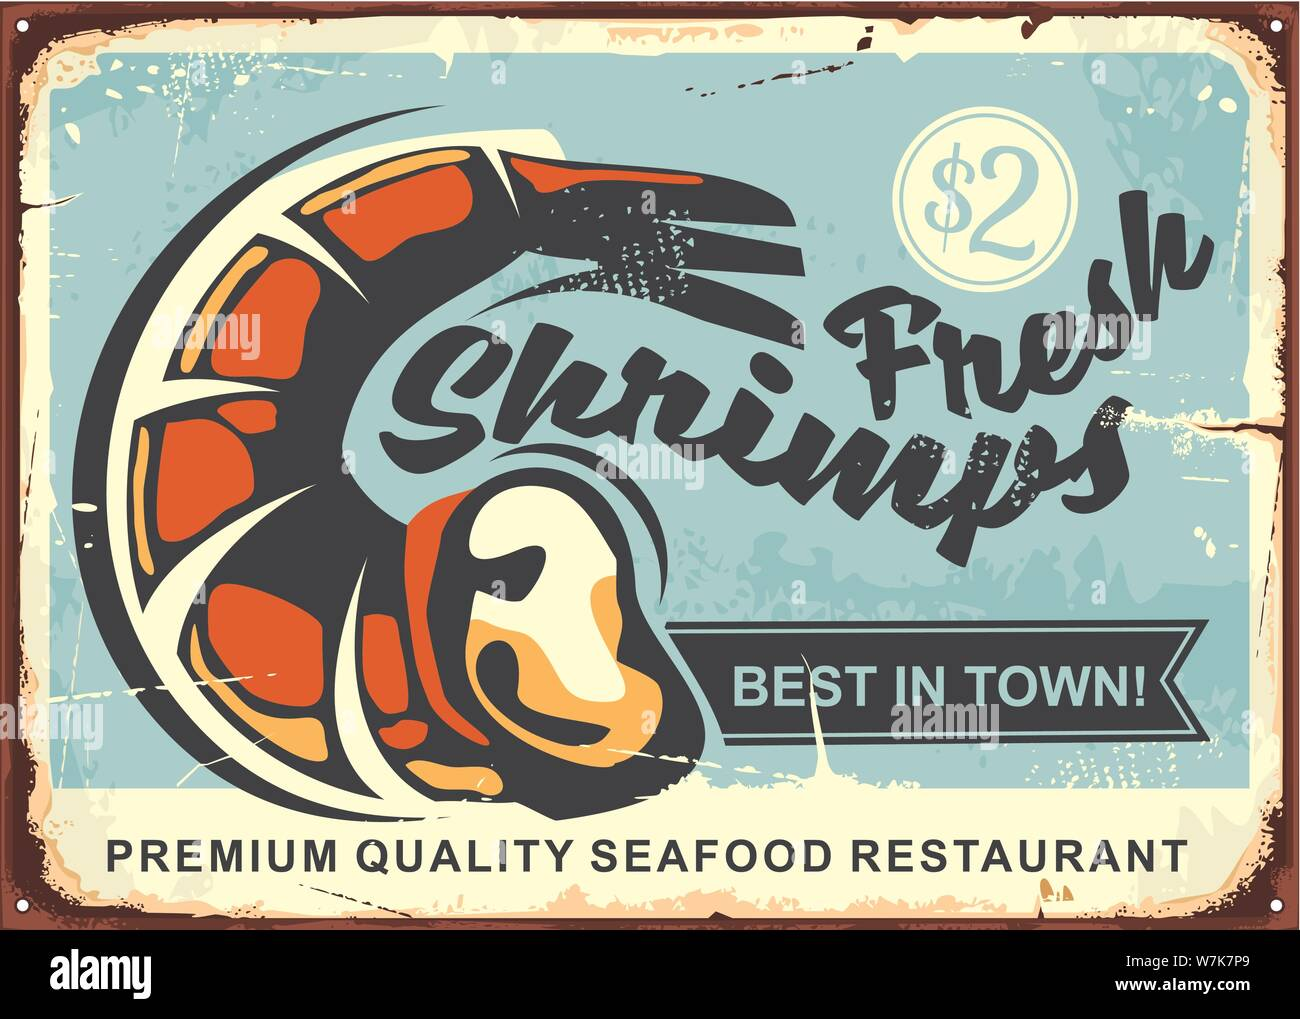 Fresh Shrimps Vintage Sign Design Best Seafood Restaurant In Town Retro Poster Vector Illustration Food And Drink Theme Stock Vector Image Art Alamy